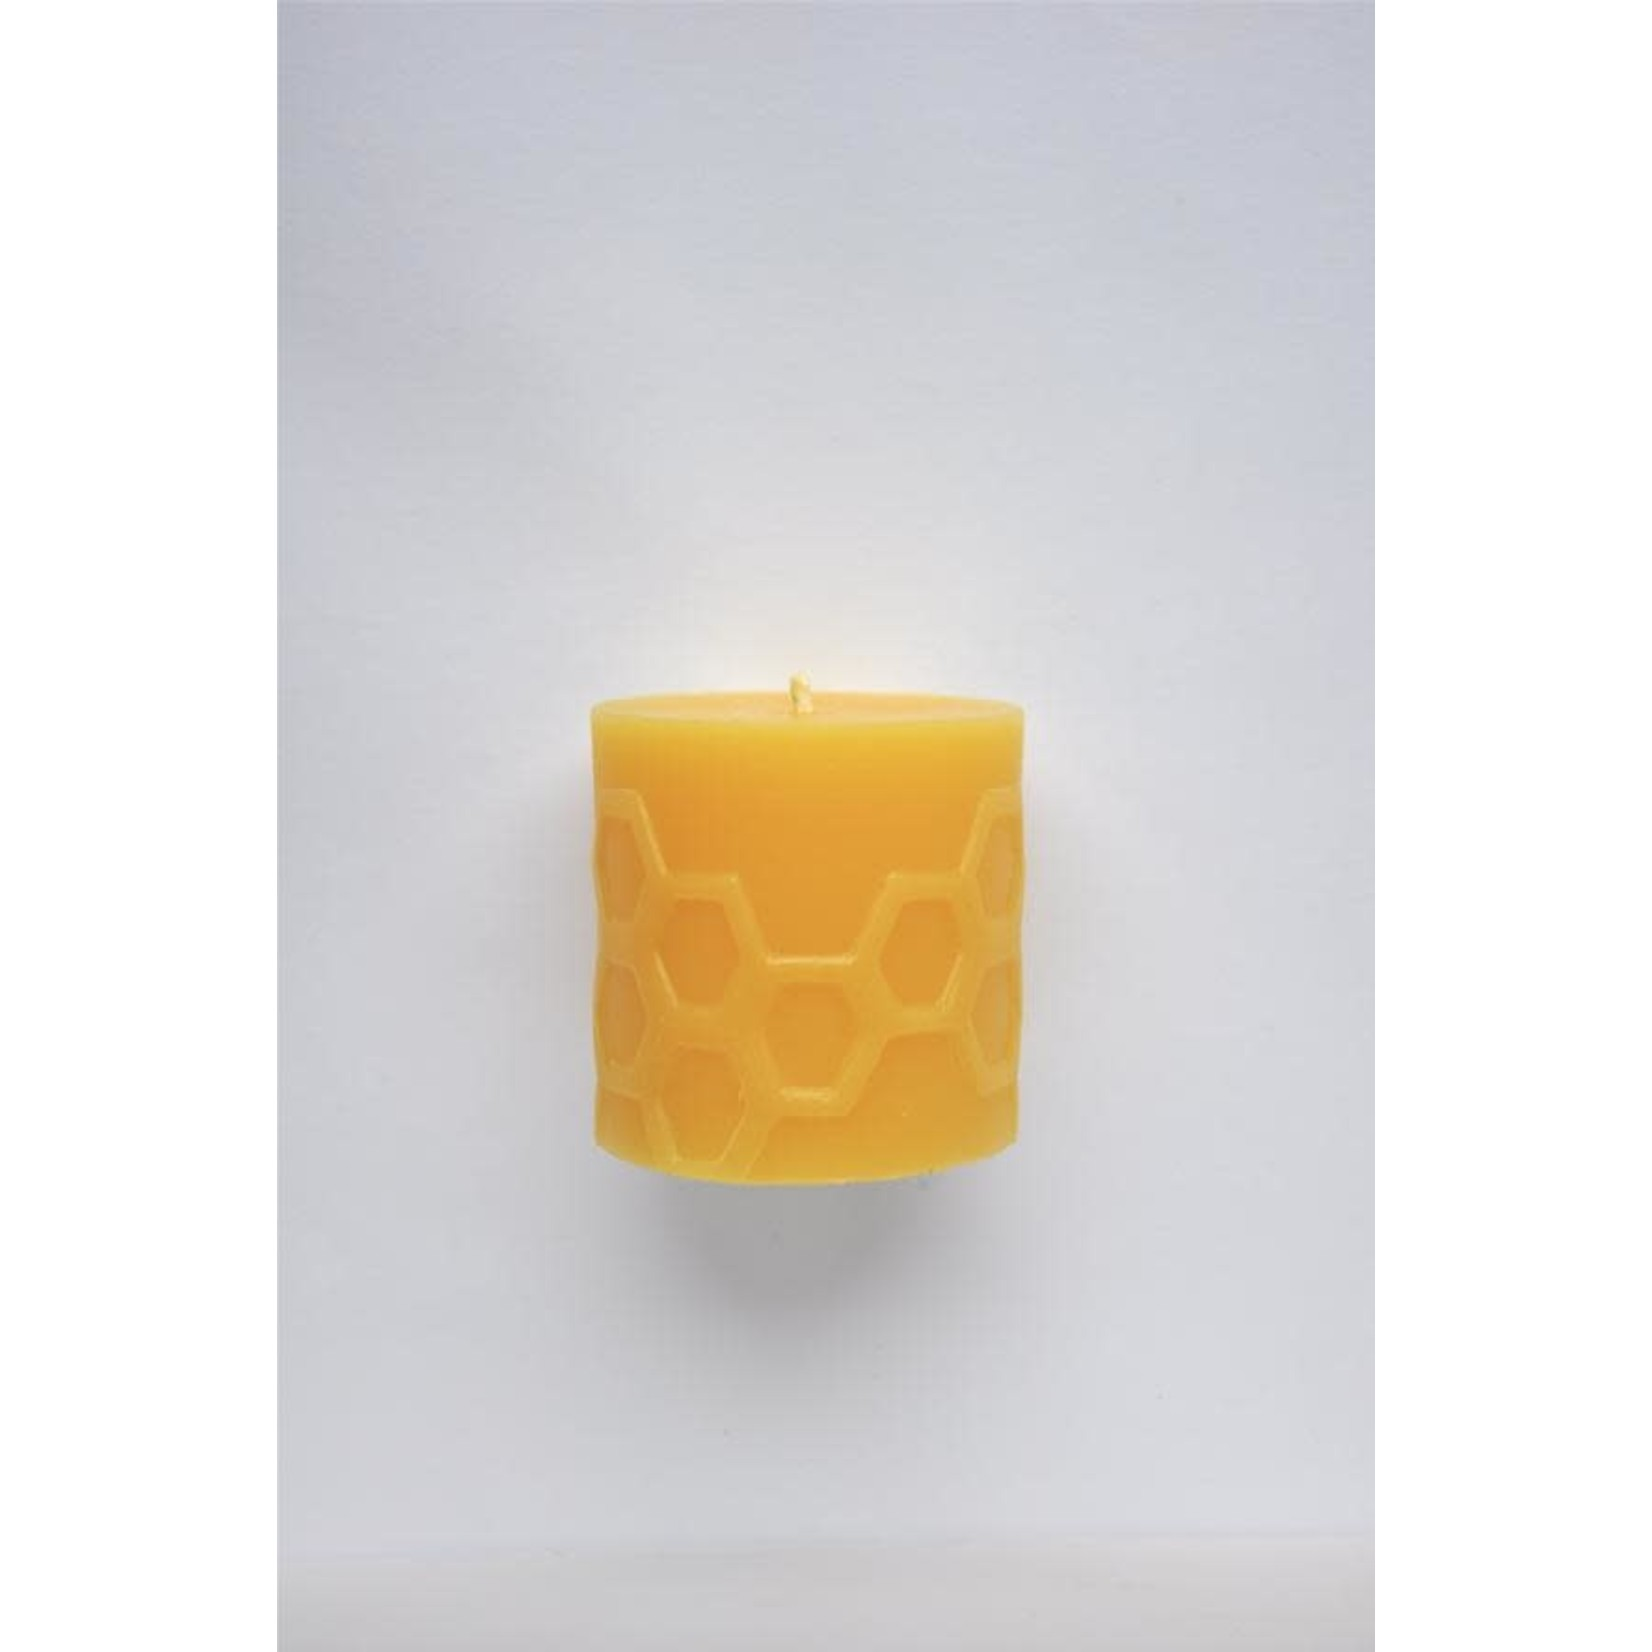 BEES WAX WORKS HEX 3.0